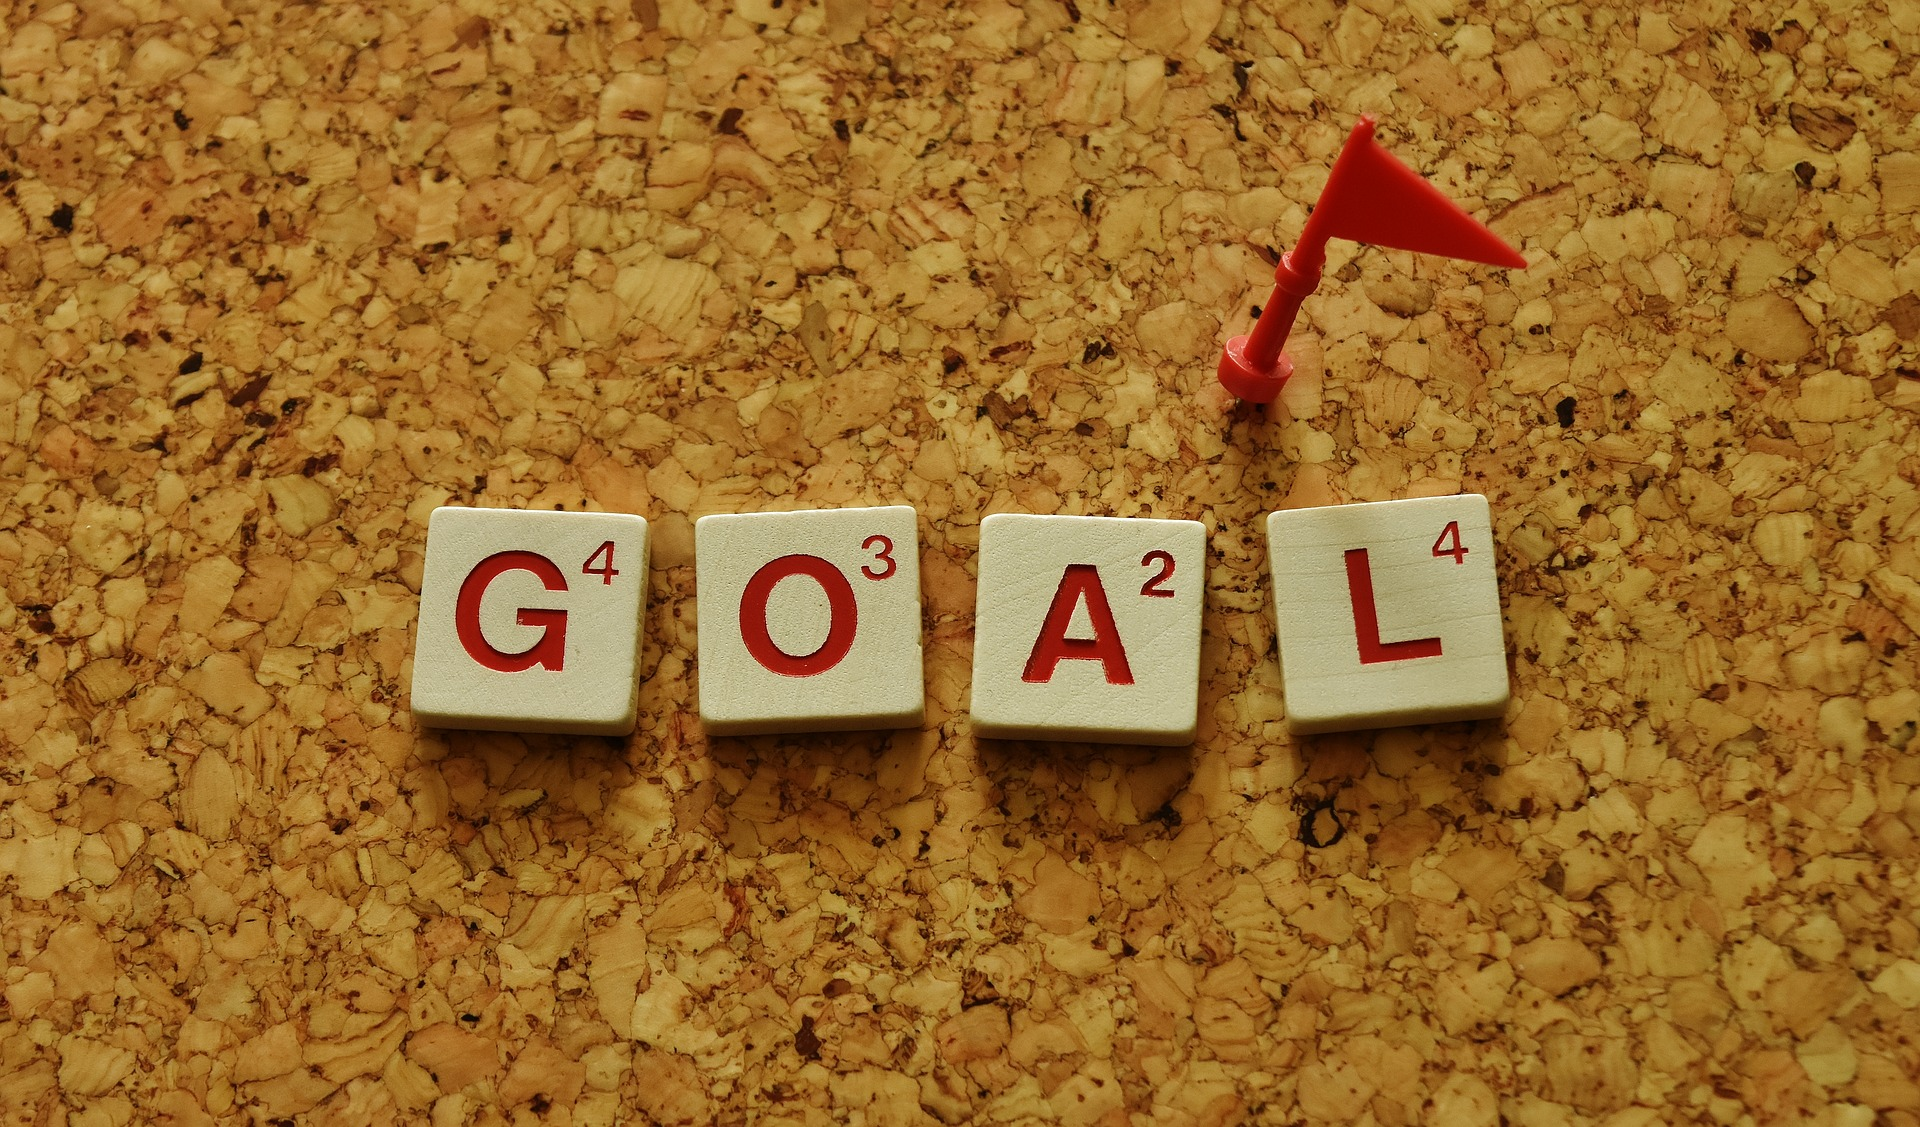 How important is having a goal?